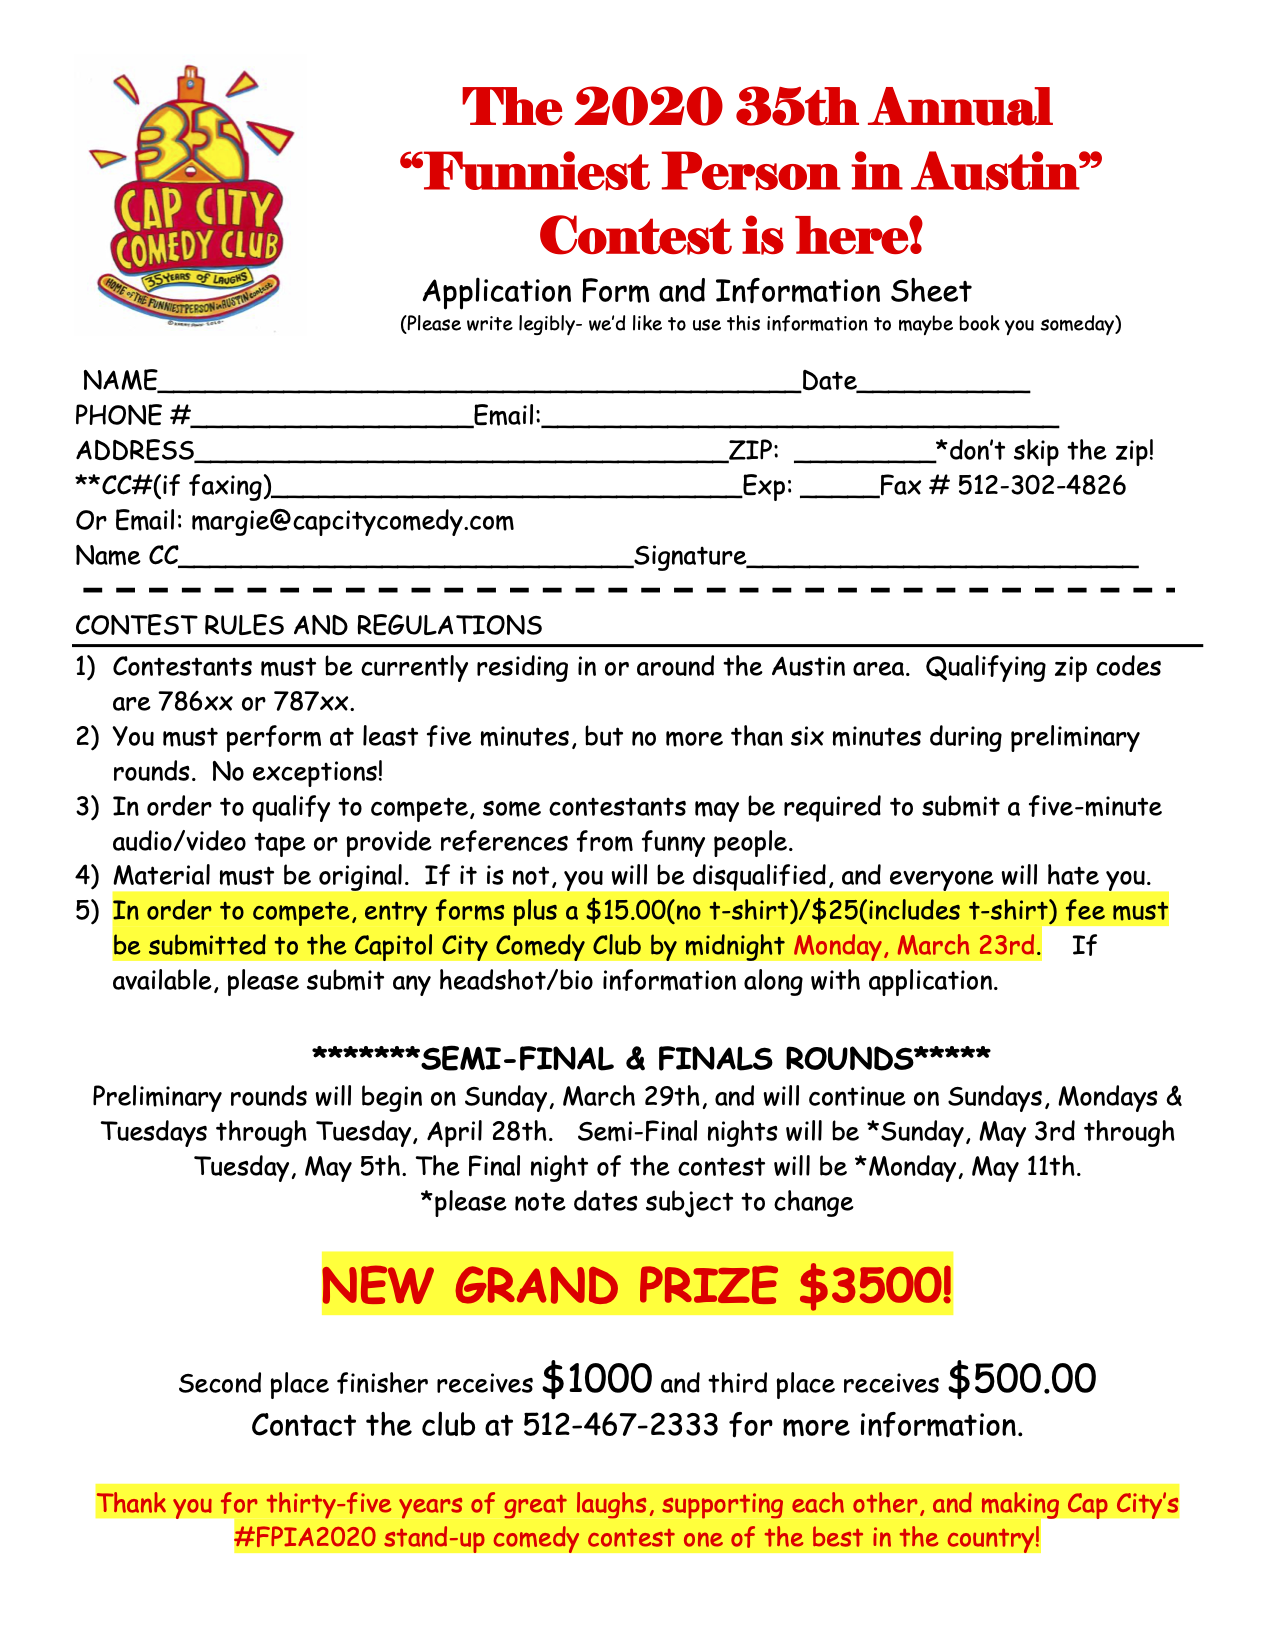 Sign-up form for FPIA competition.